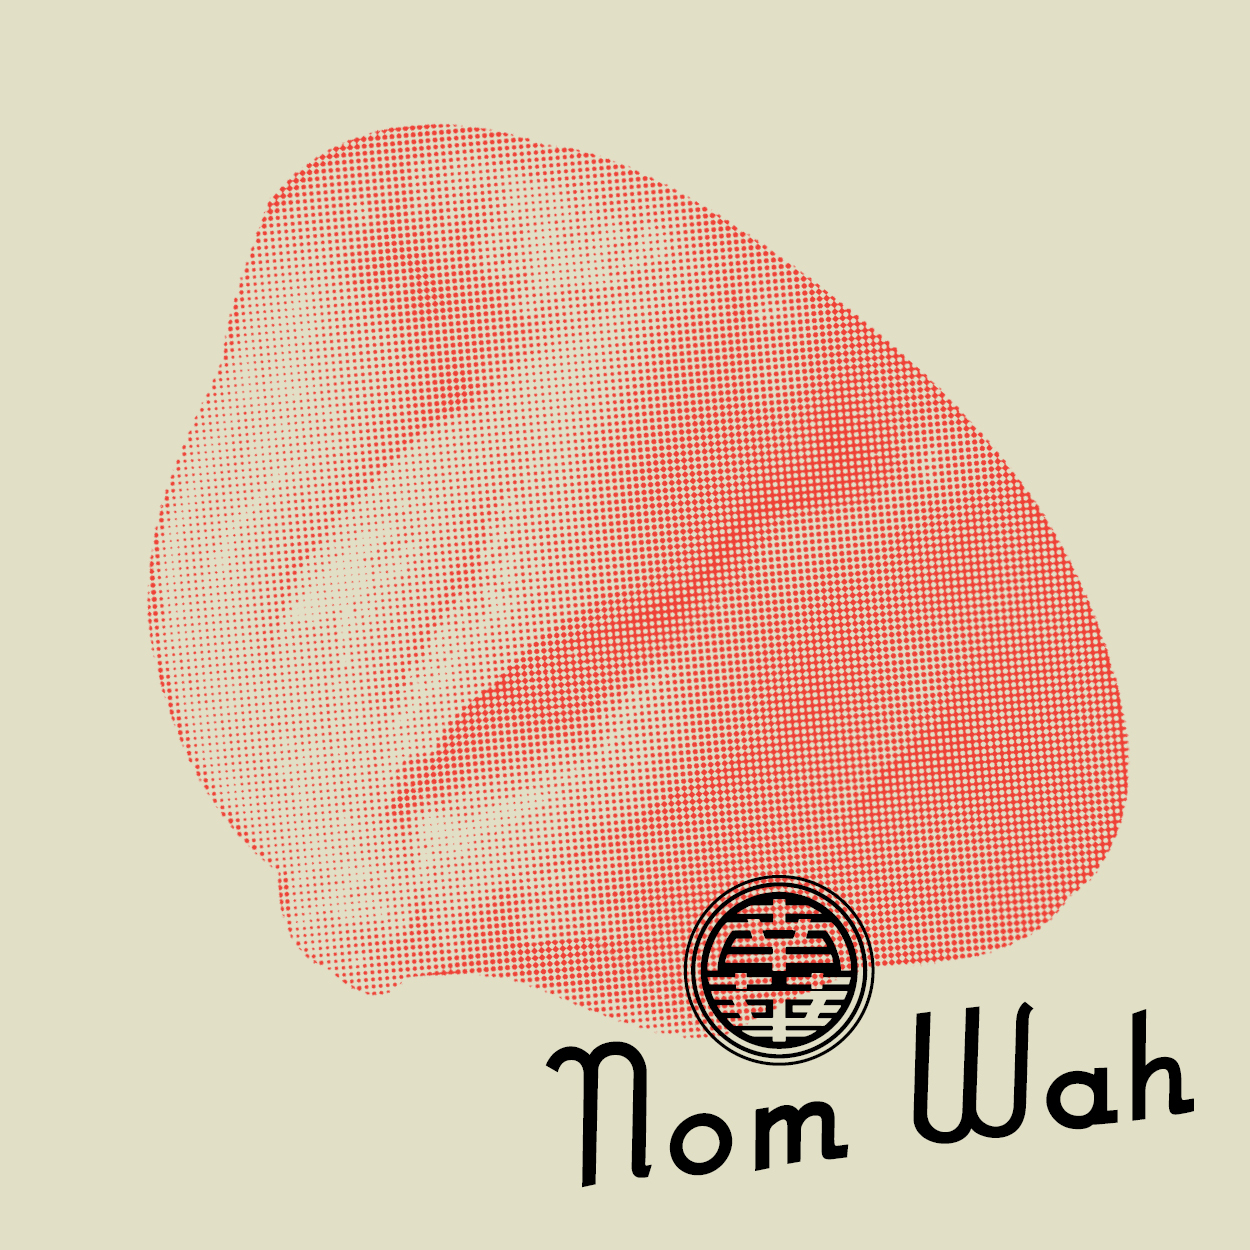 Composition of a pink dumpling against a pale yellow background promoting a Dim-Sum making event with restaurant Nom Wah.